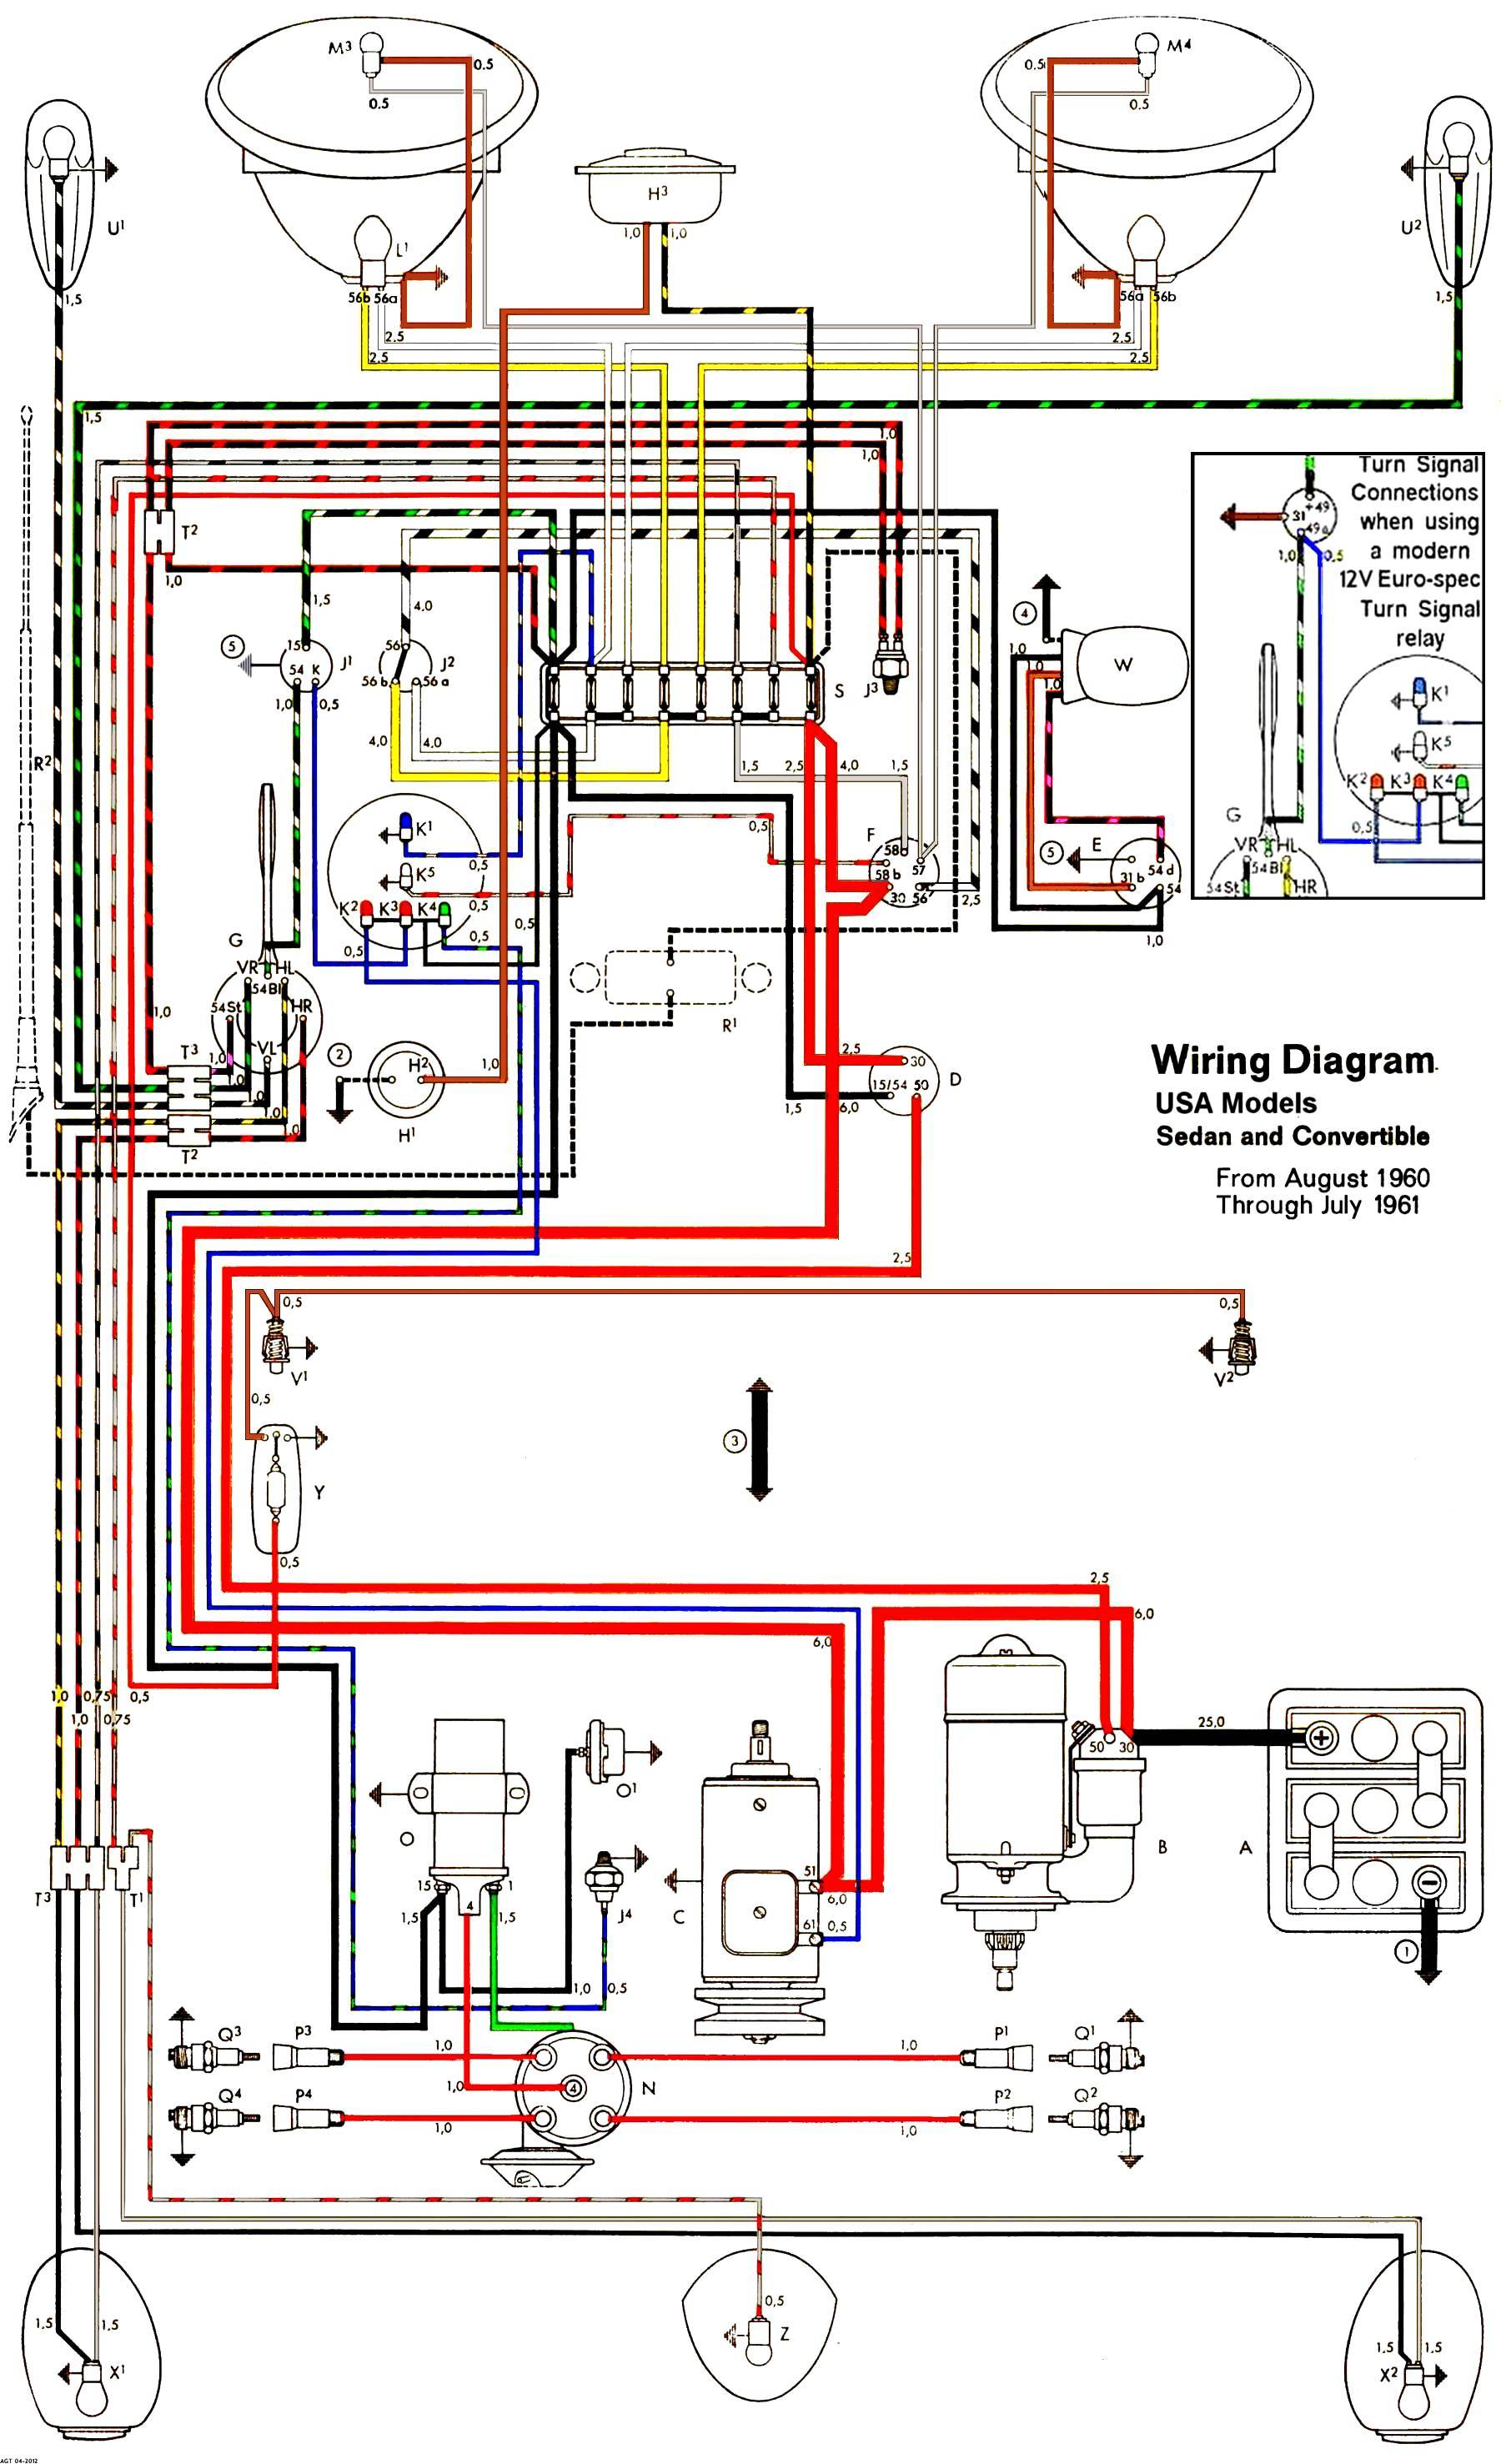 Type 1 Wiring Diagrams 1978 Chevrolet Alternator Diagram Free Download